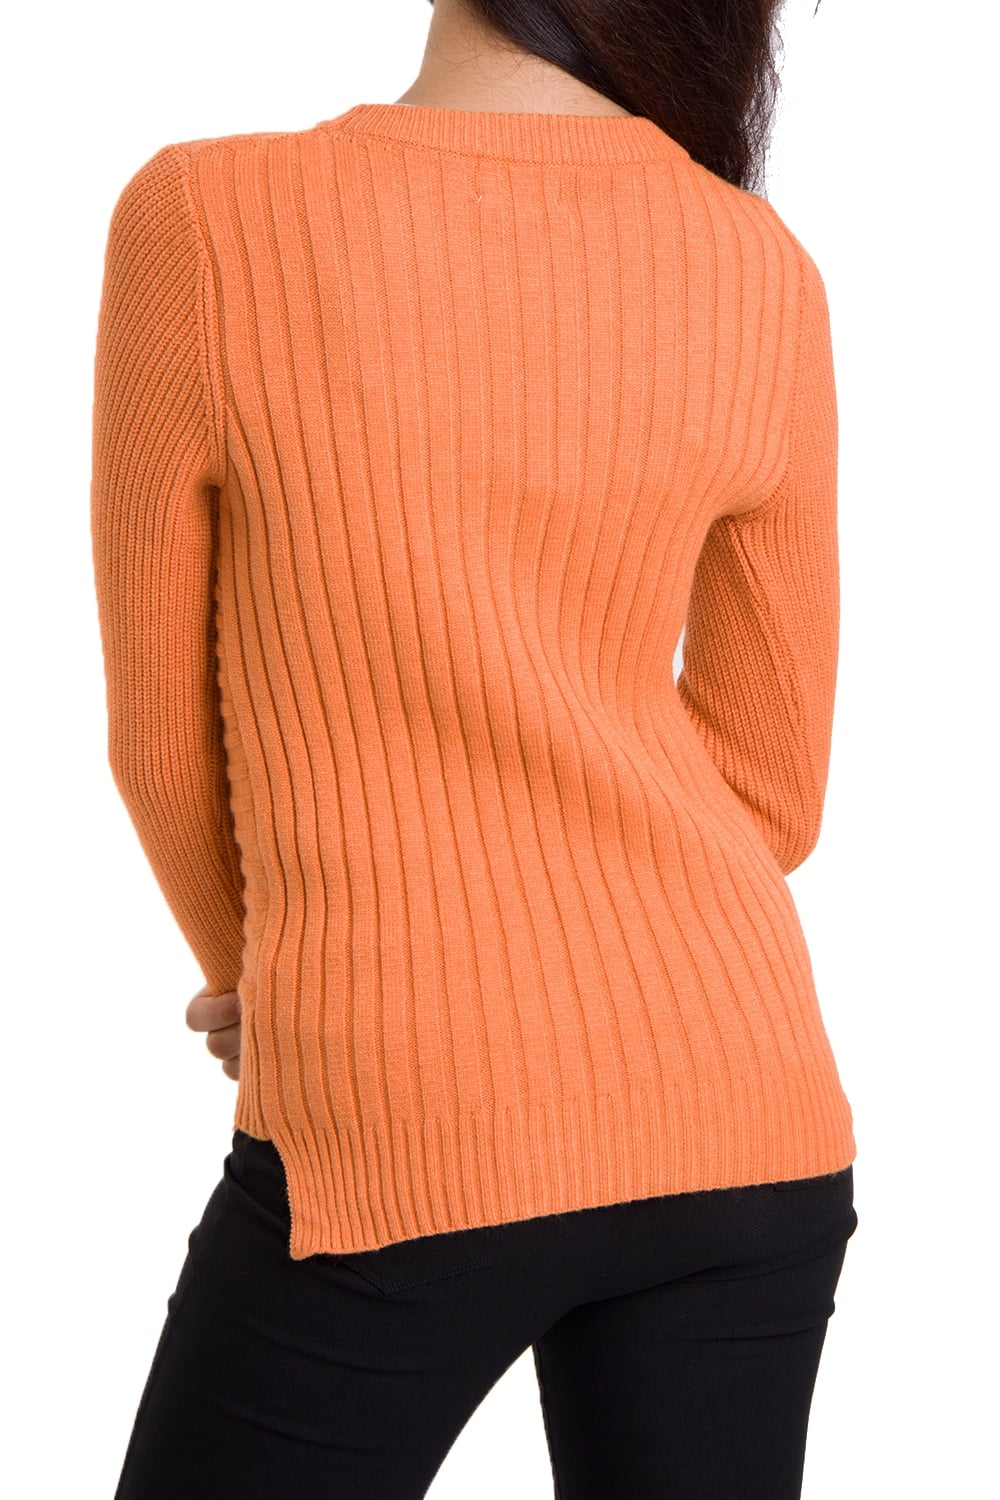 de5d5ce04f3 Soft Knitted Jumper with Cut- Away Hem – Urban Mist UK